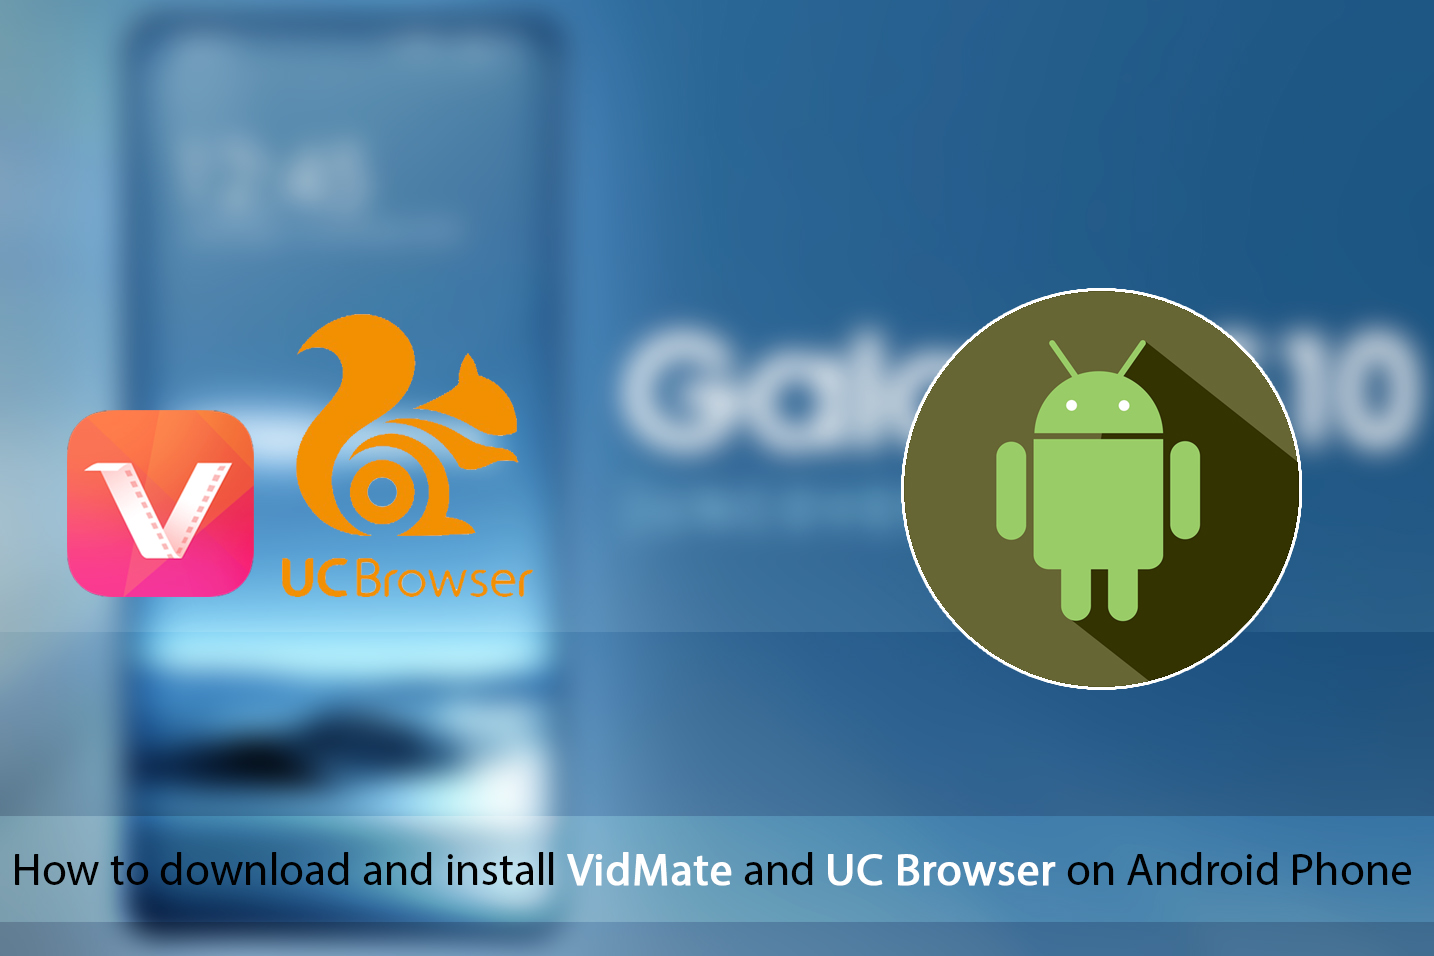 How to download and install VidMate for android